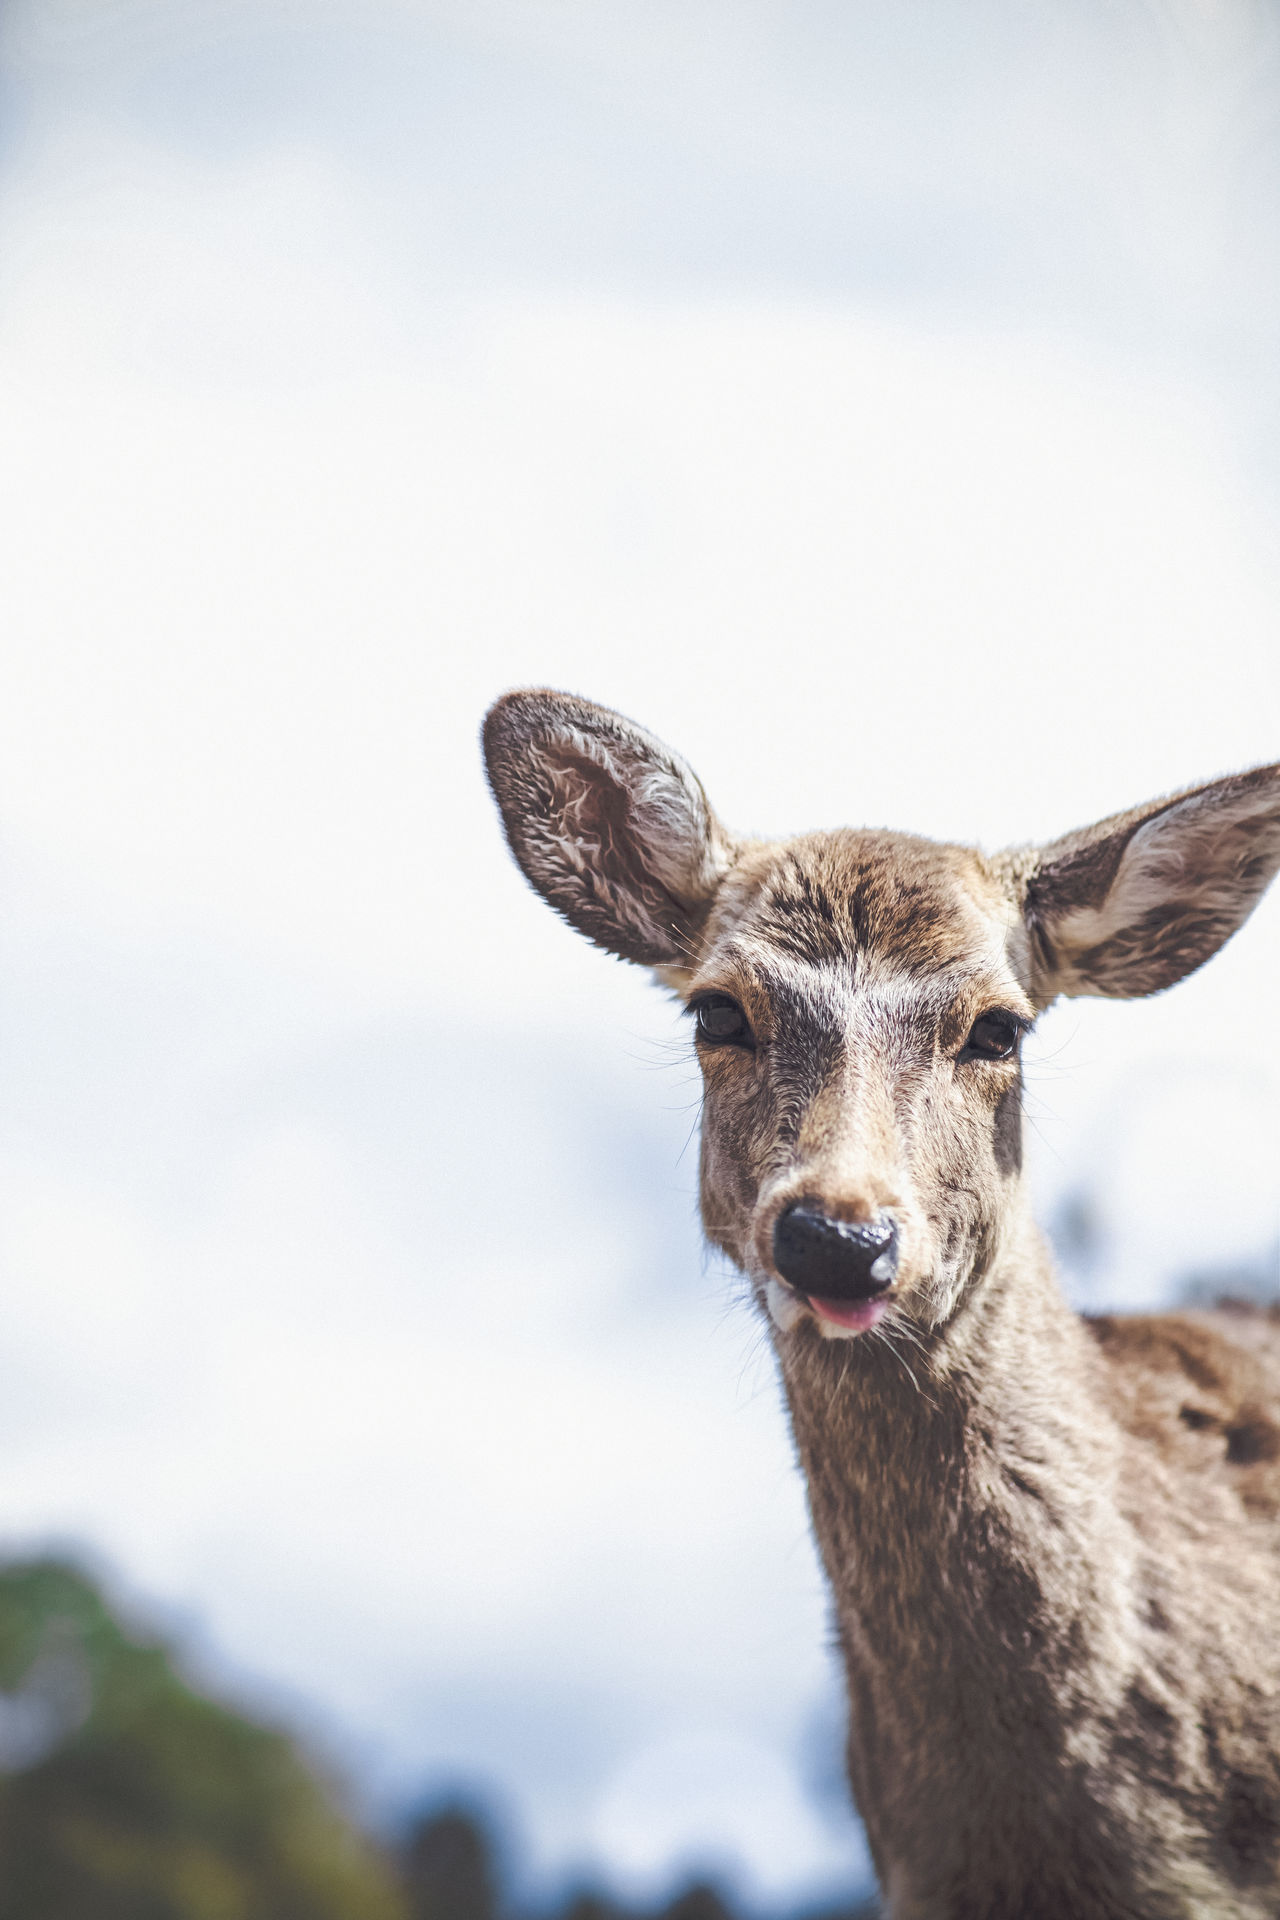 Animal Head  Animal Themes Animal Wildlife Animals In The Wild Close-up Day Deer Focus On Foreground FUNNY ANIMALS Japan Japan Photography Looking At Camera Mammal Nature No People One Animal Outdoors Portrait Sky